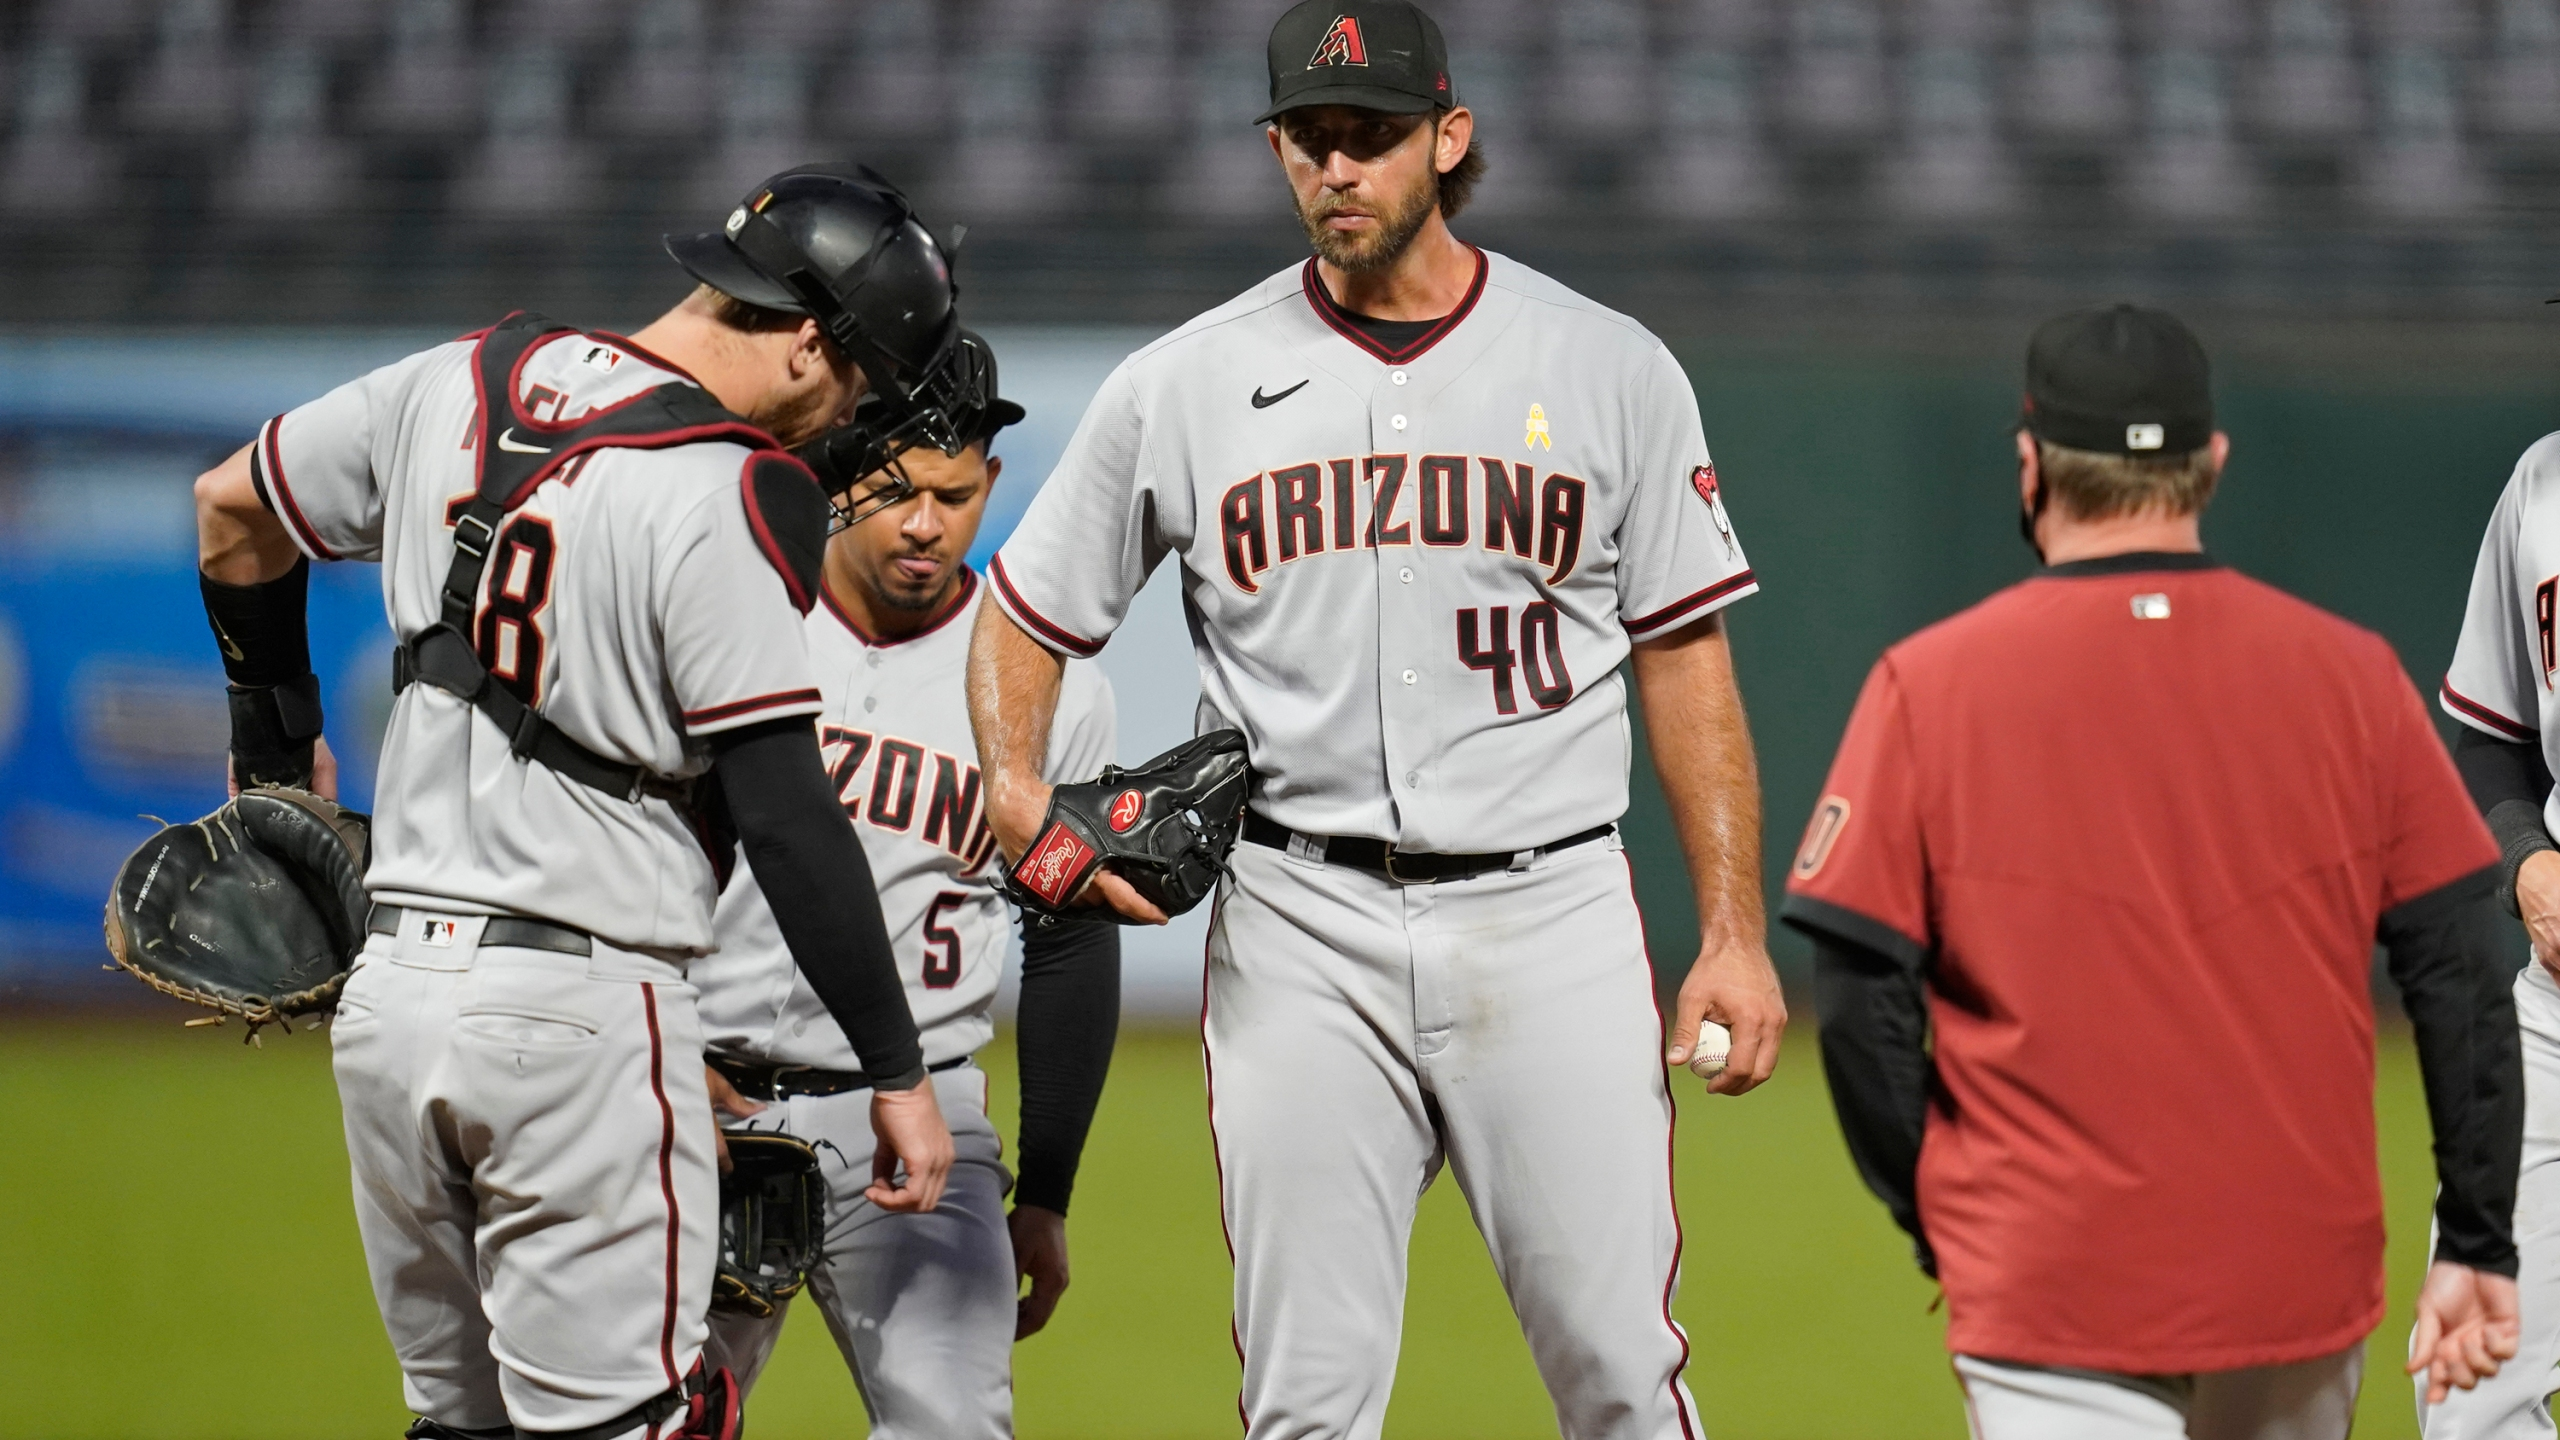 Madison Bumgarner, Eduardo Escobar, Carson Kelly